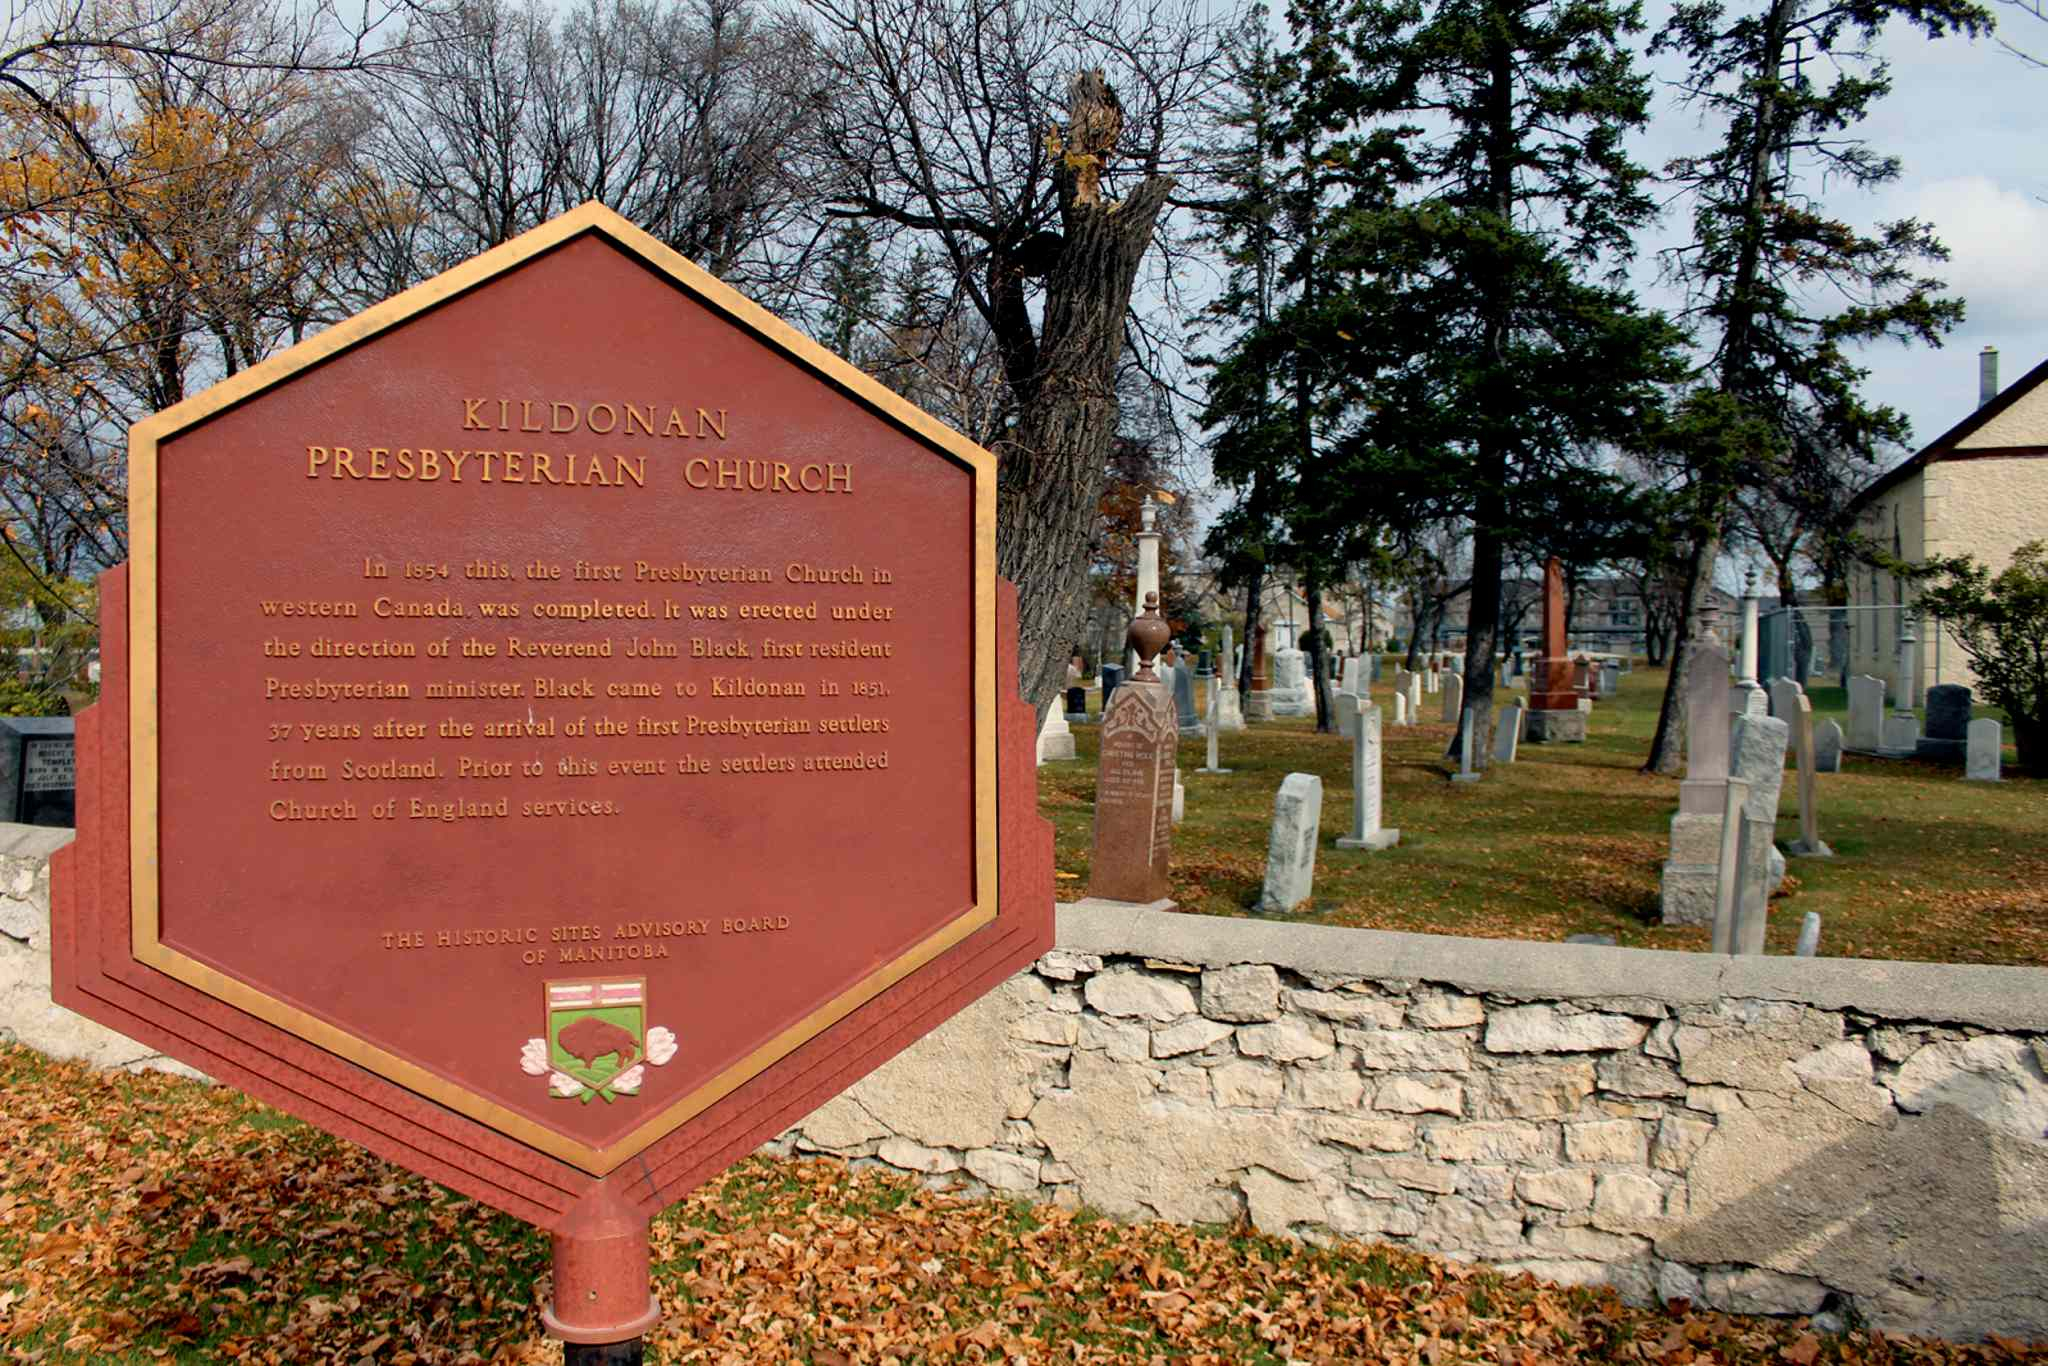 The organizers of Winnipeg's annual Paracon convention are putting together a cemetery crawl at Kildonan Presbyterian Cemetery Nov. 1 to teach attendees about local history.